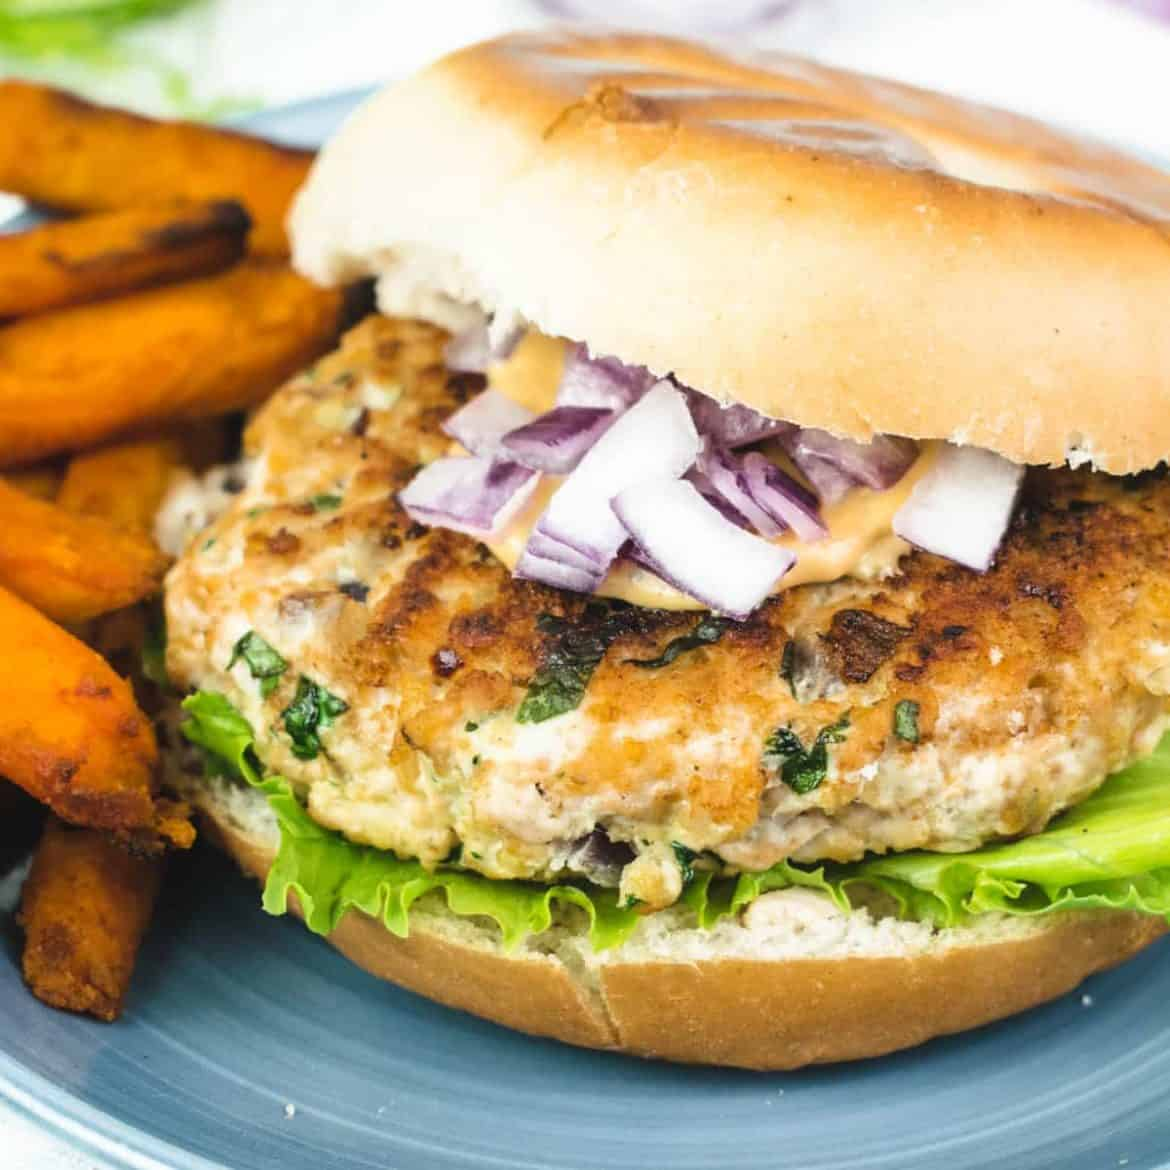 Garlic Turkey Burger Recipe